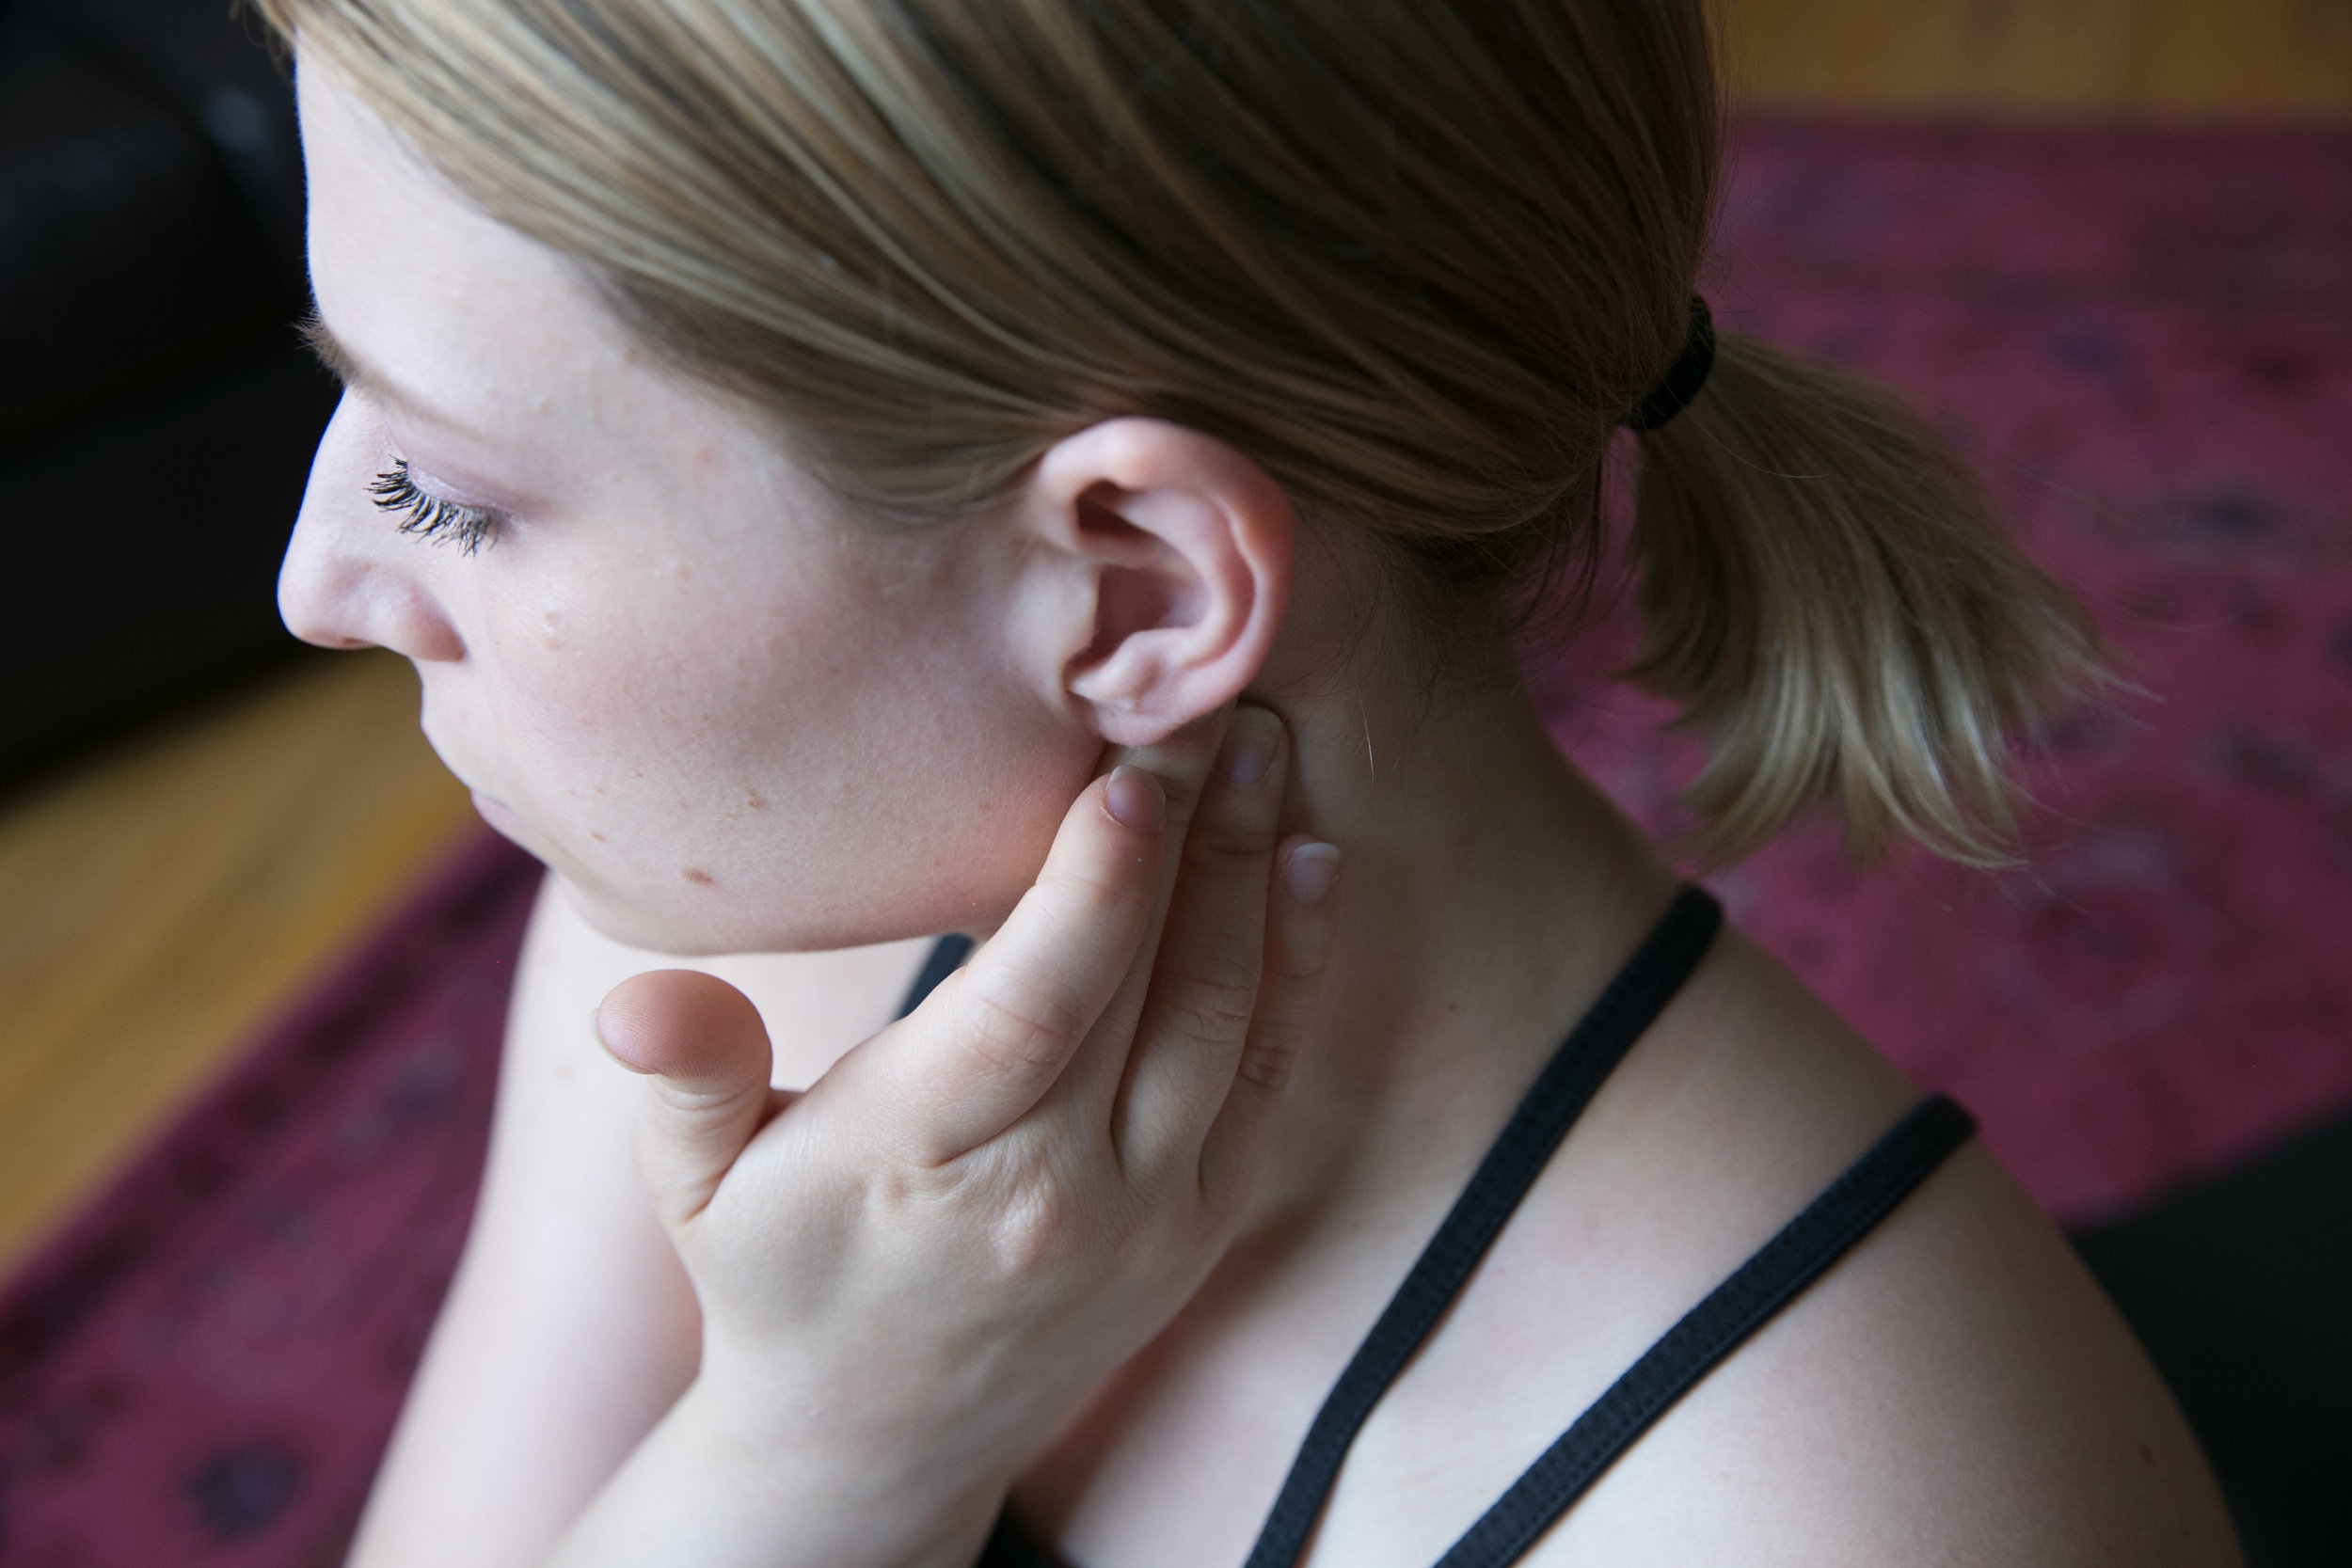 1. - Continue the previous exercise, but work your way all the way up behind your ear.